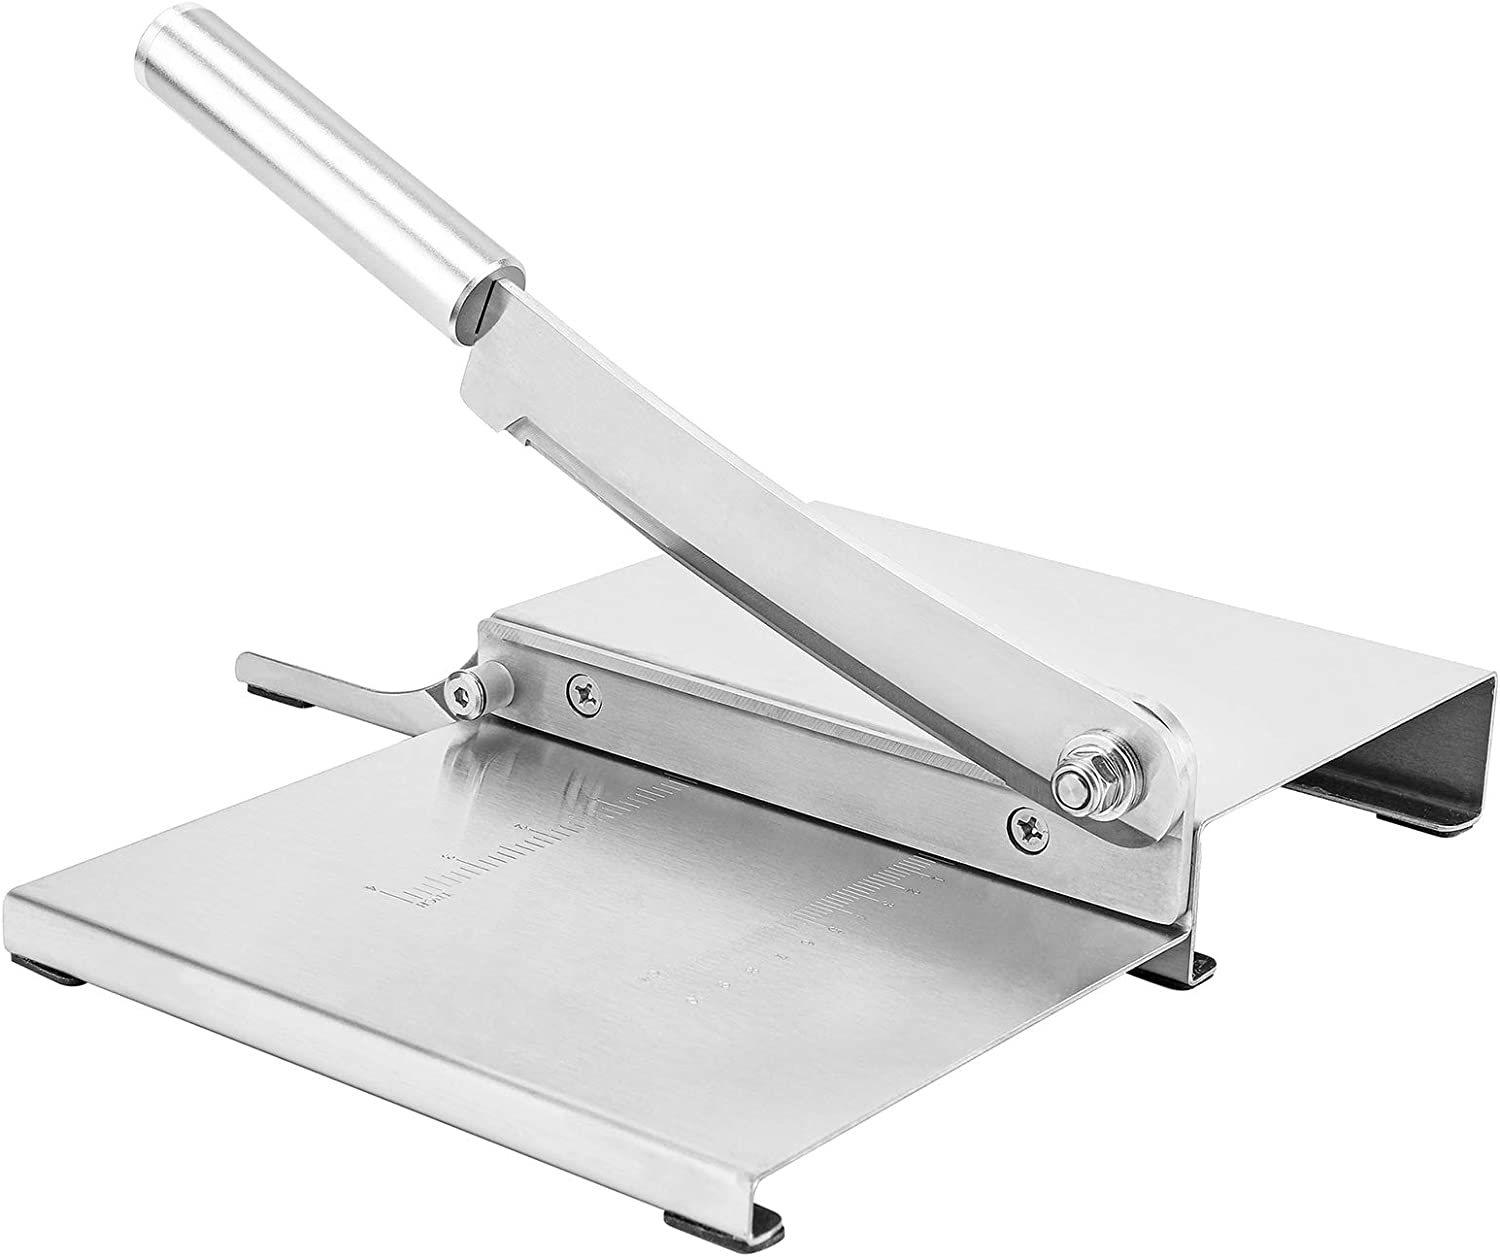 Moongiantgo Meat Slicer Manual Deli Food Slicer Stainless Steel Jerky Cutter with 1-10 CM and 1-4 INCH Scale Line for Meat Bacon Vegetable Fruit Herbs Pastry Cheese (KD0142: 155mm Cutting Length)